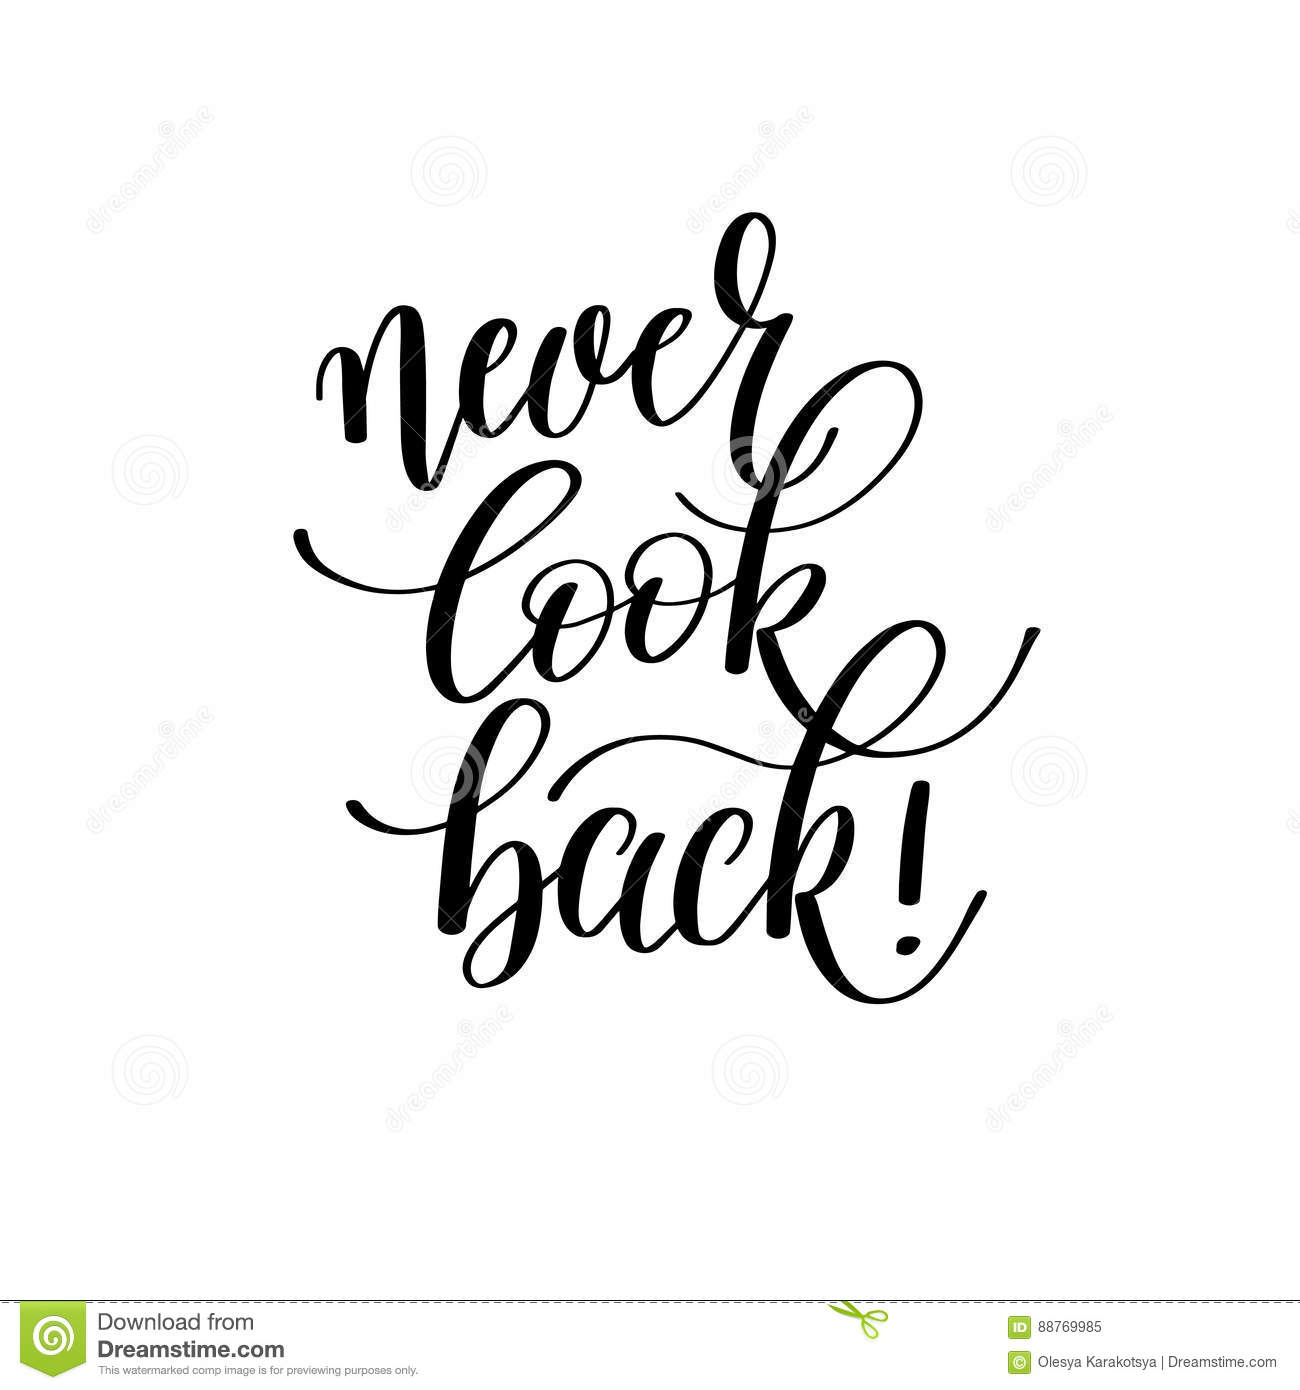 never look back! - hand written lettering motivation positive quote